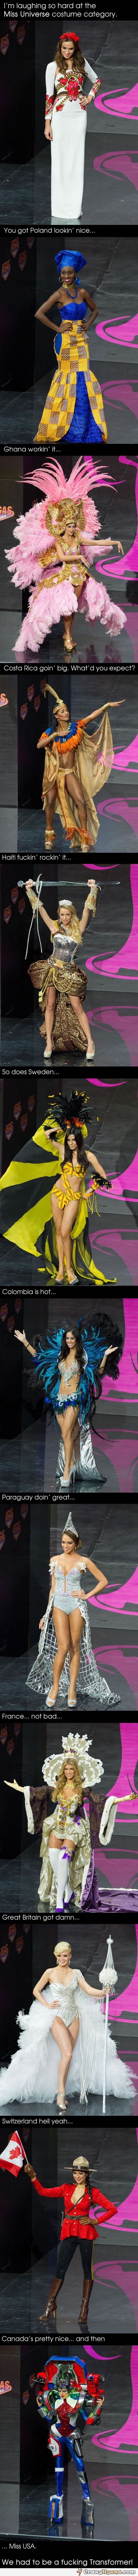 Miss USA at Miss Universe costume category, funny picture.